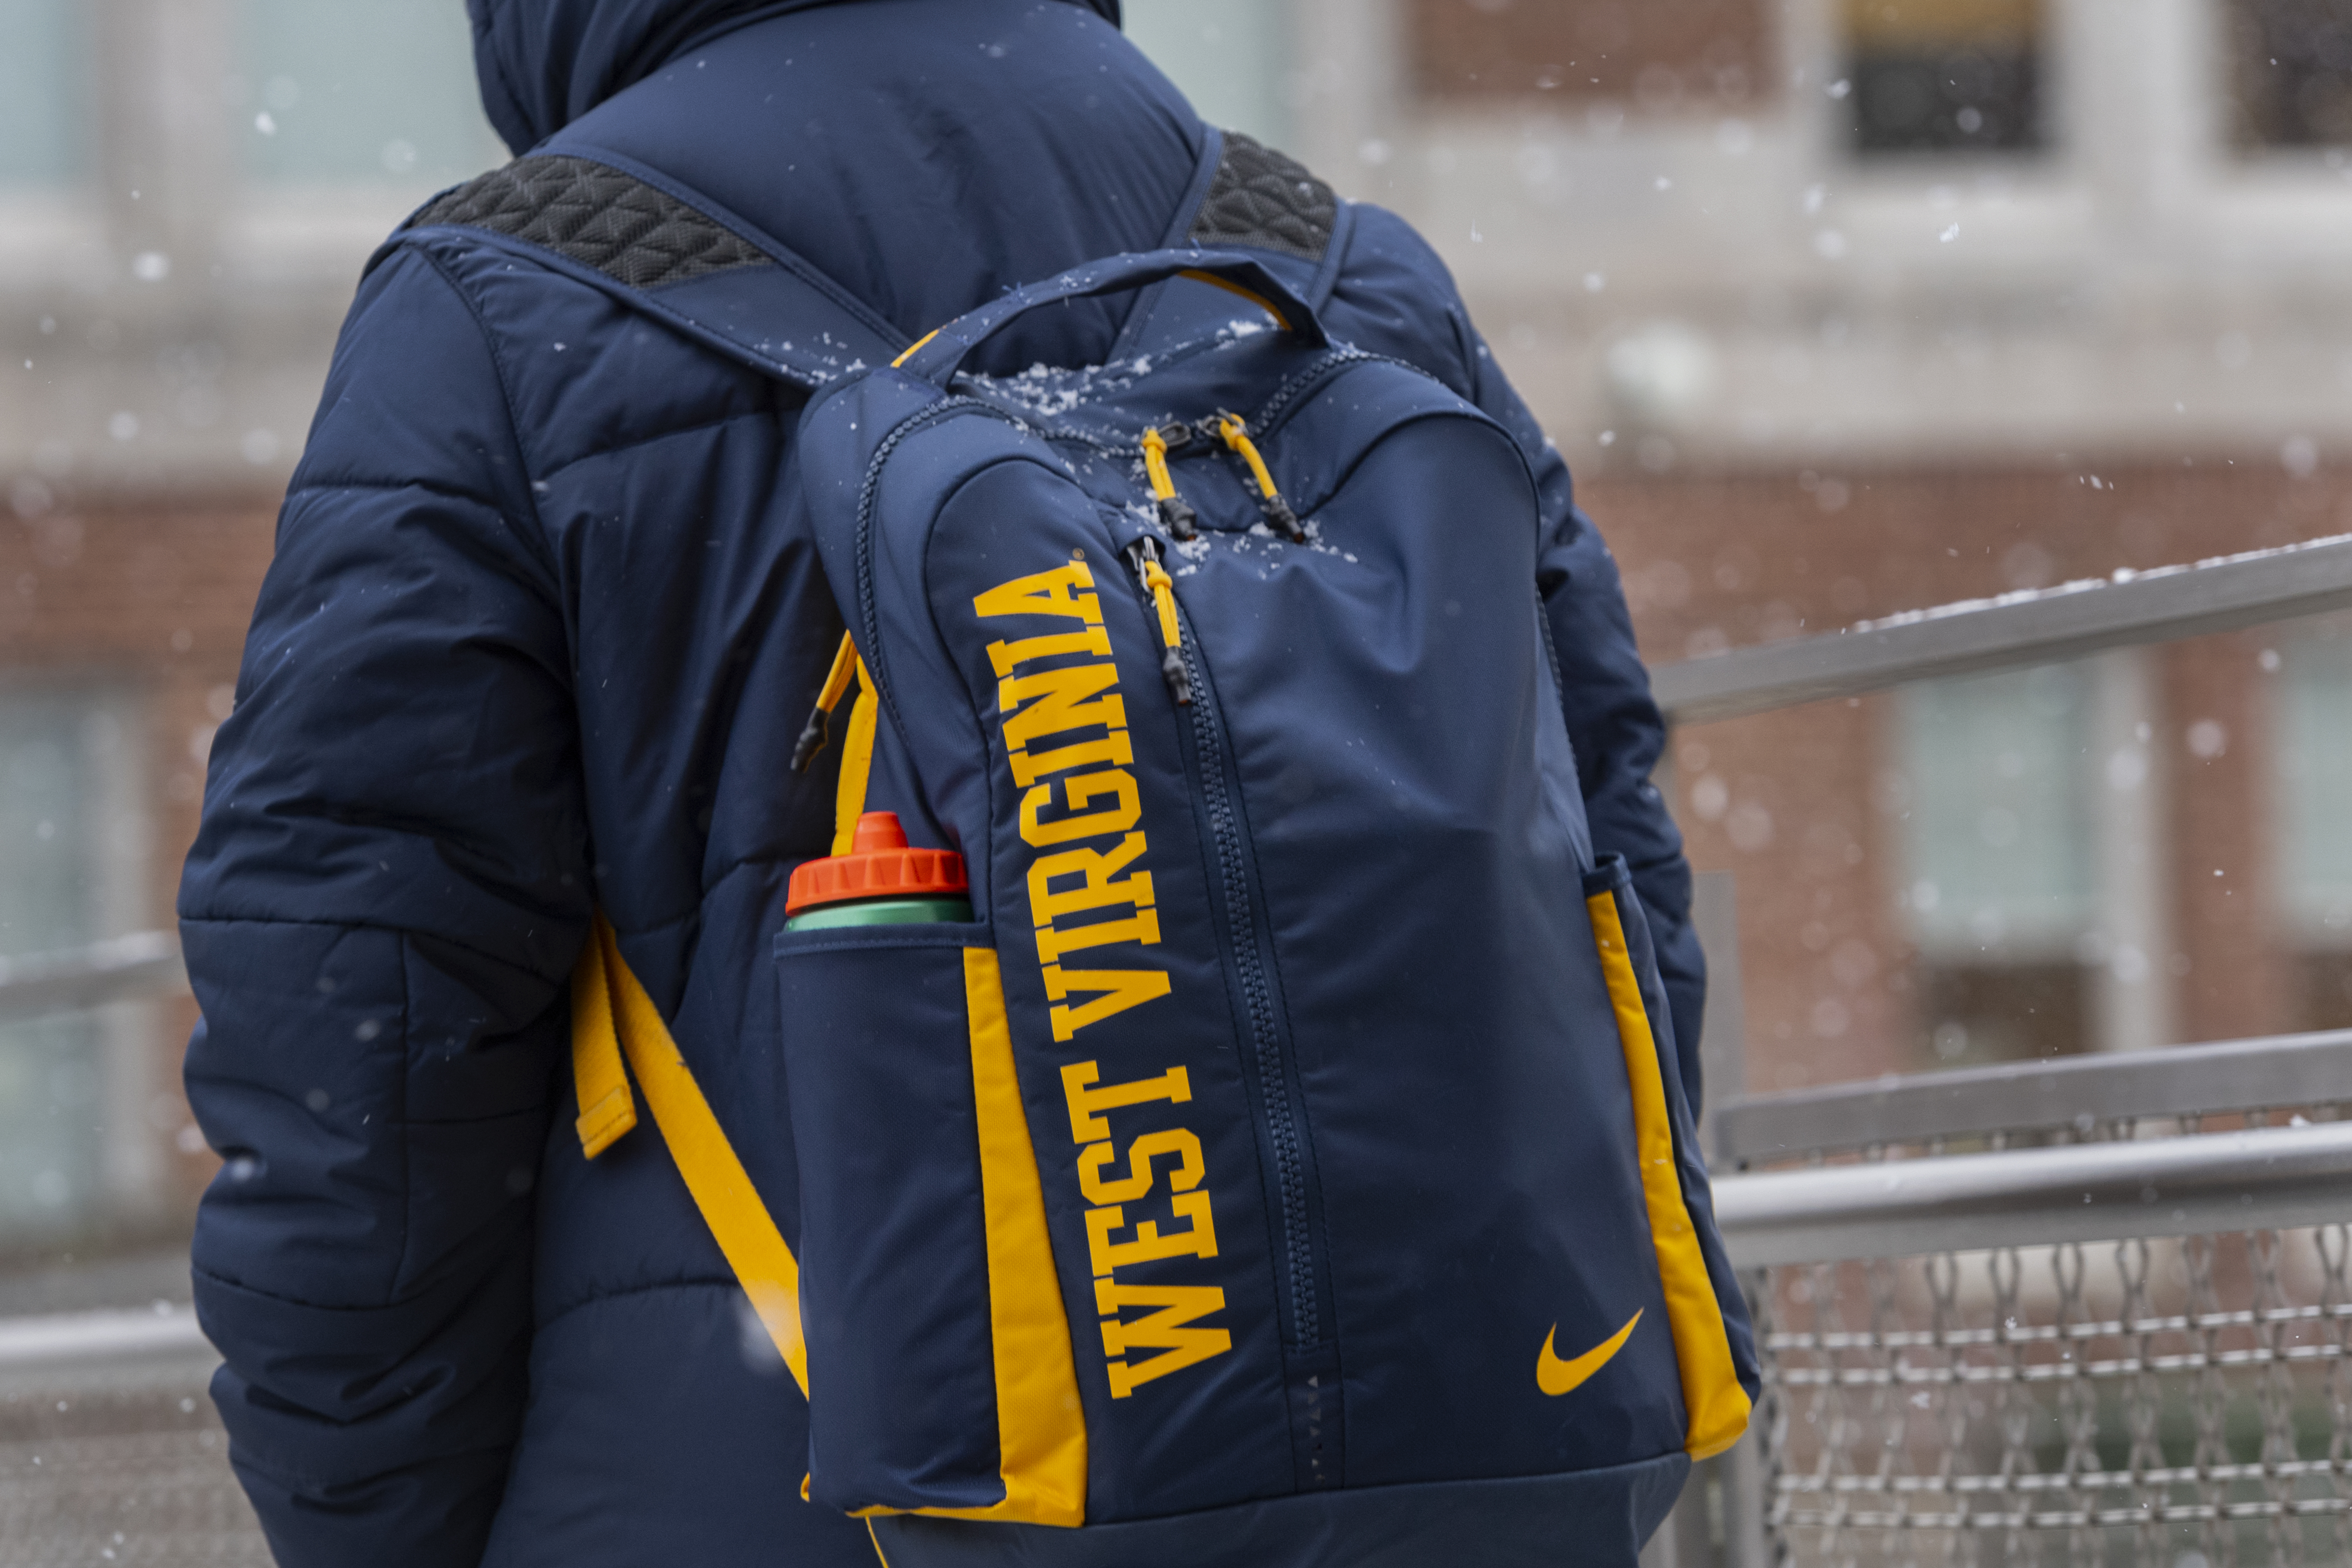 WVU student wears a backpack on the way to class in the snow.